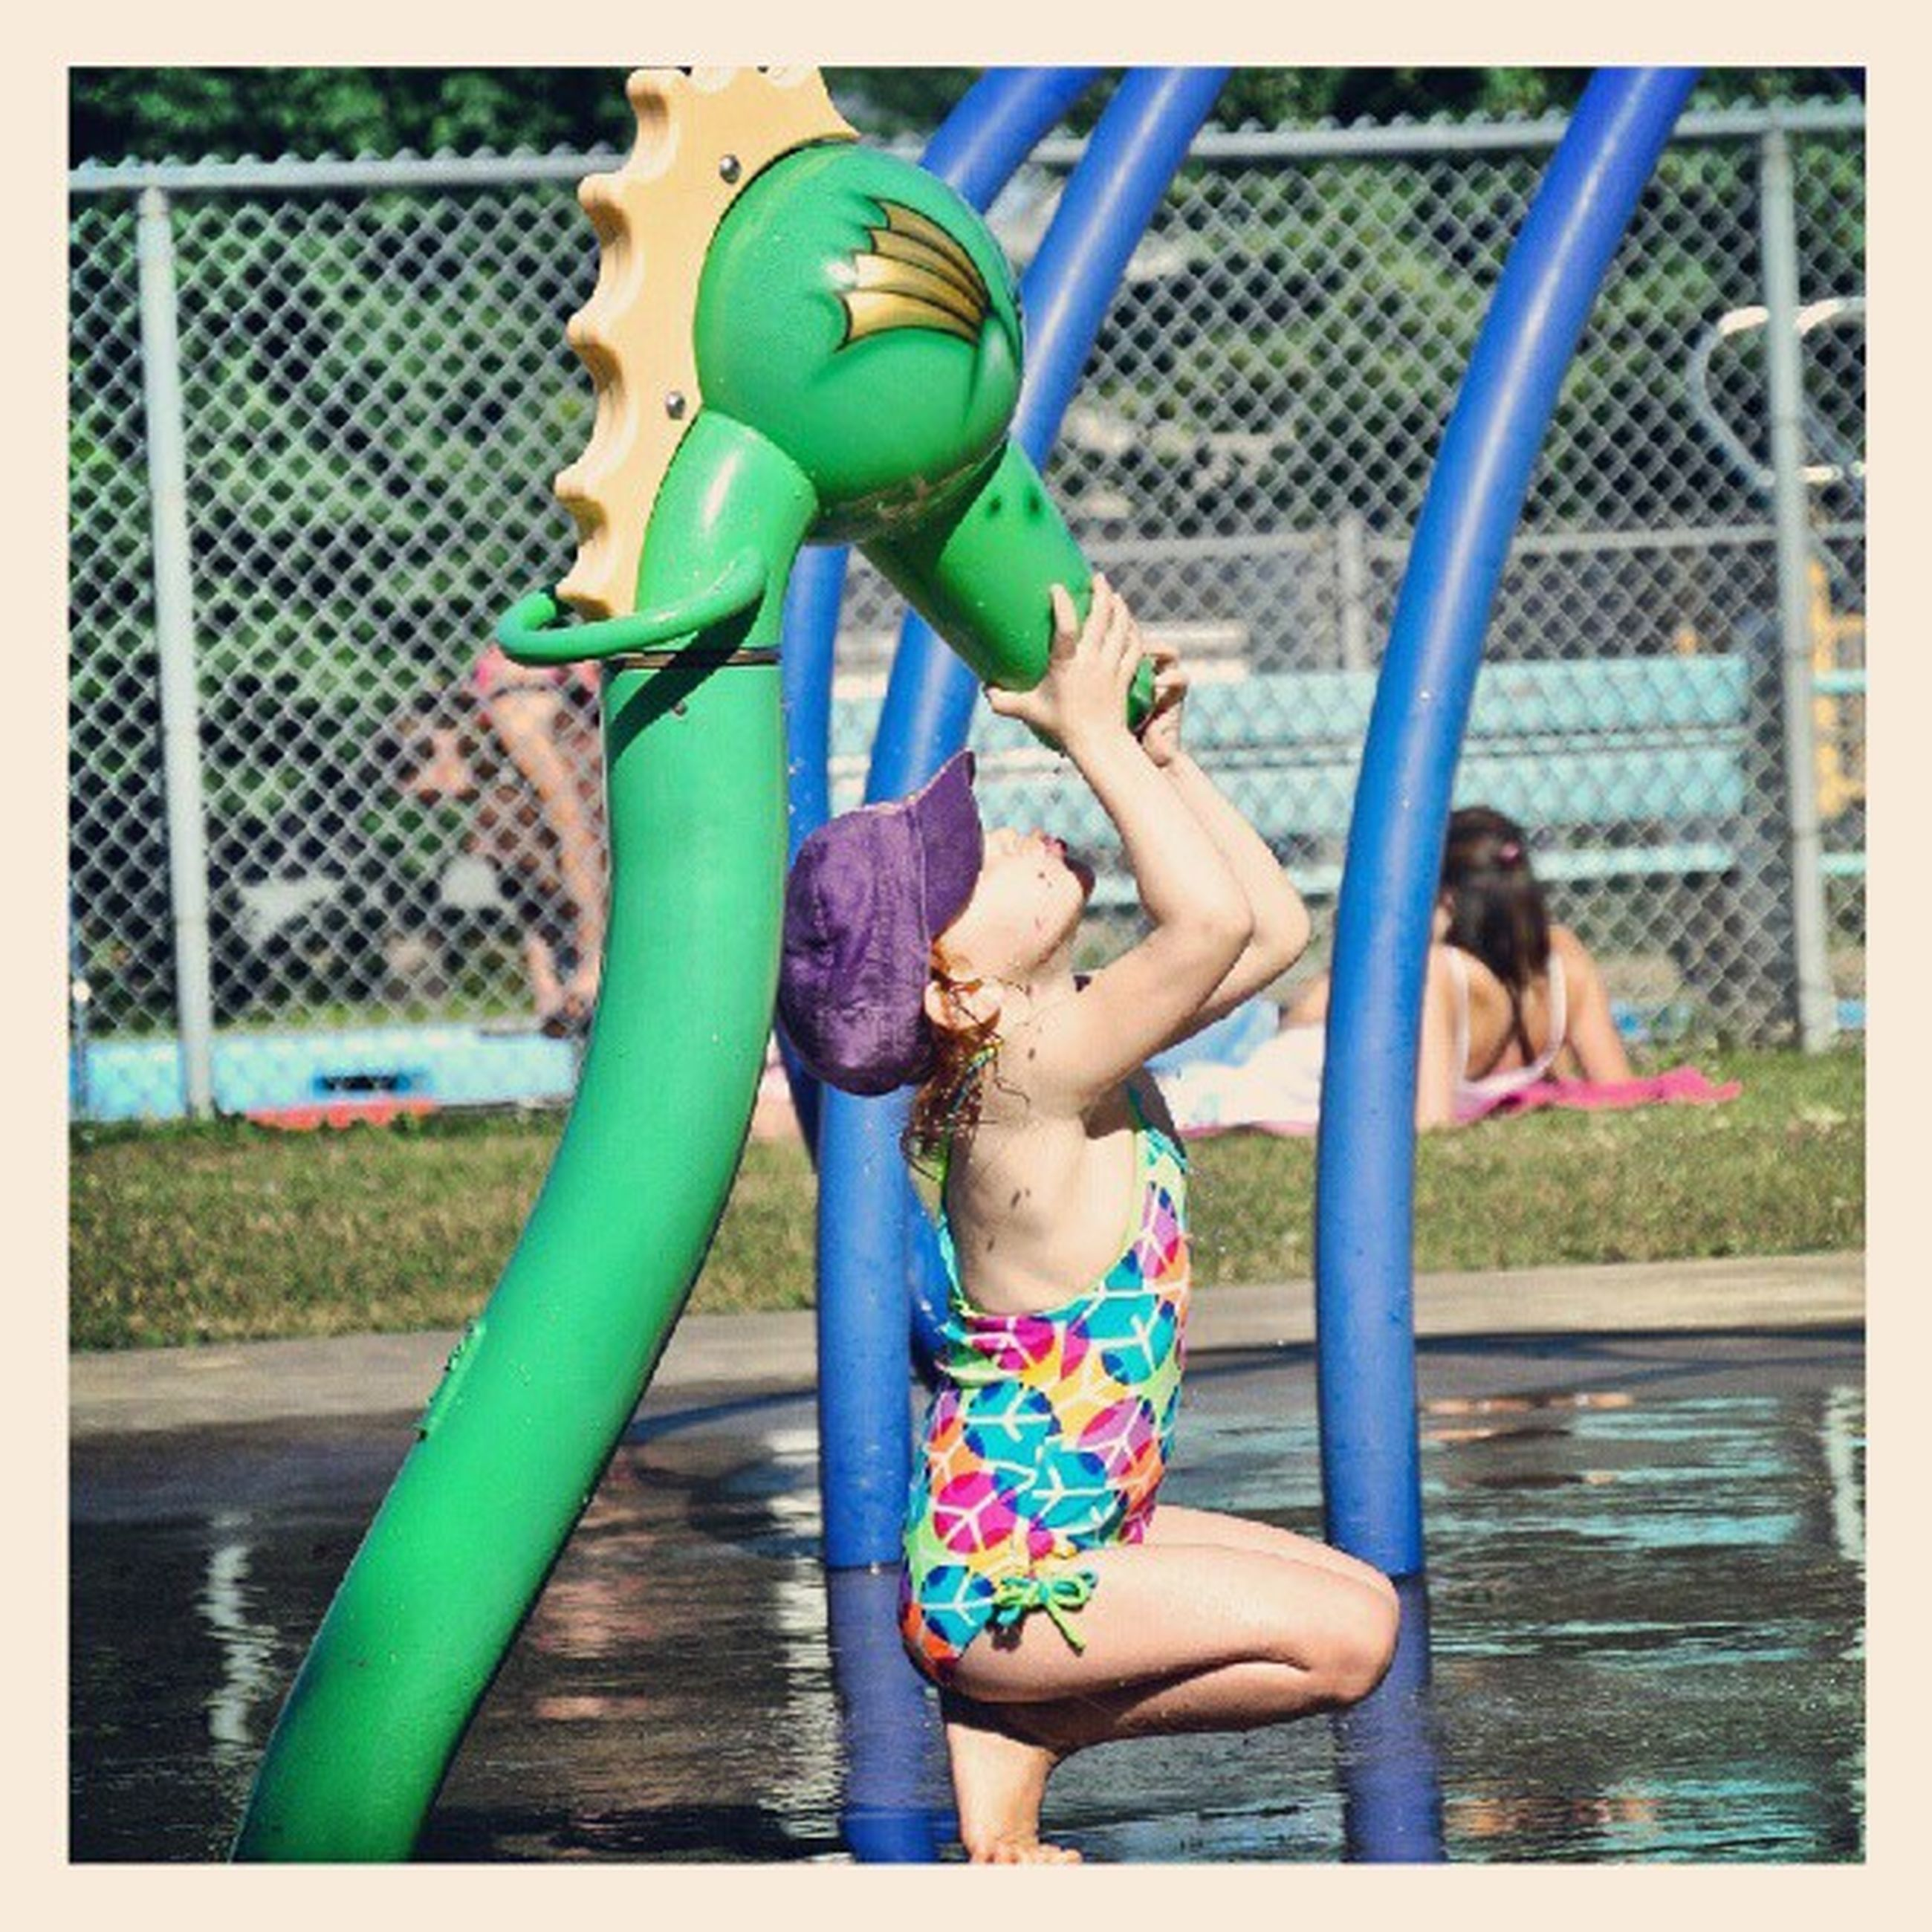 transfer print, childhood, lifestyles, leisure activity, full length, elementary age, auto post production filter, boys, playing, girls, playful, fun, playground, enjoyment, casual clothing, innocence, holding